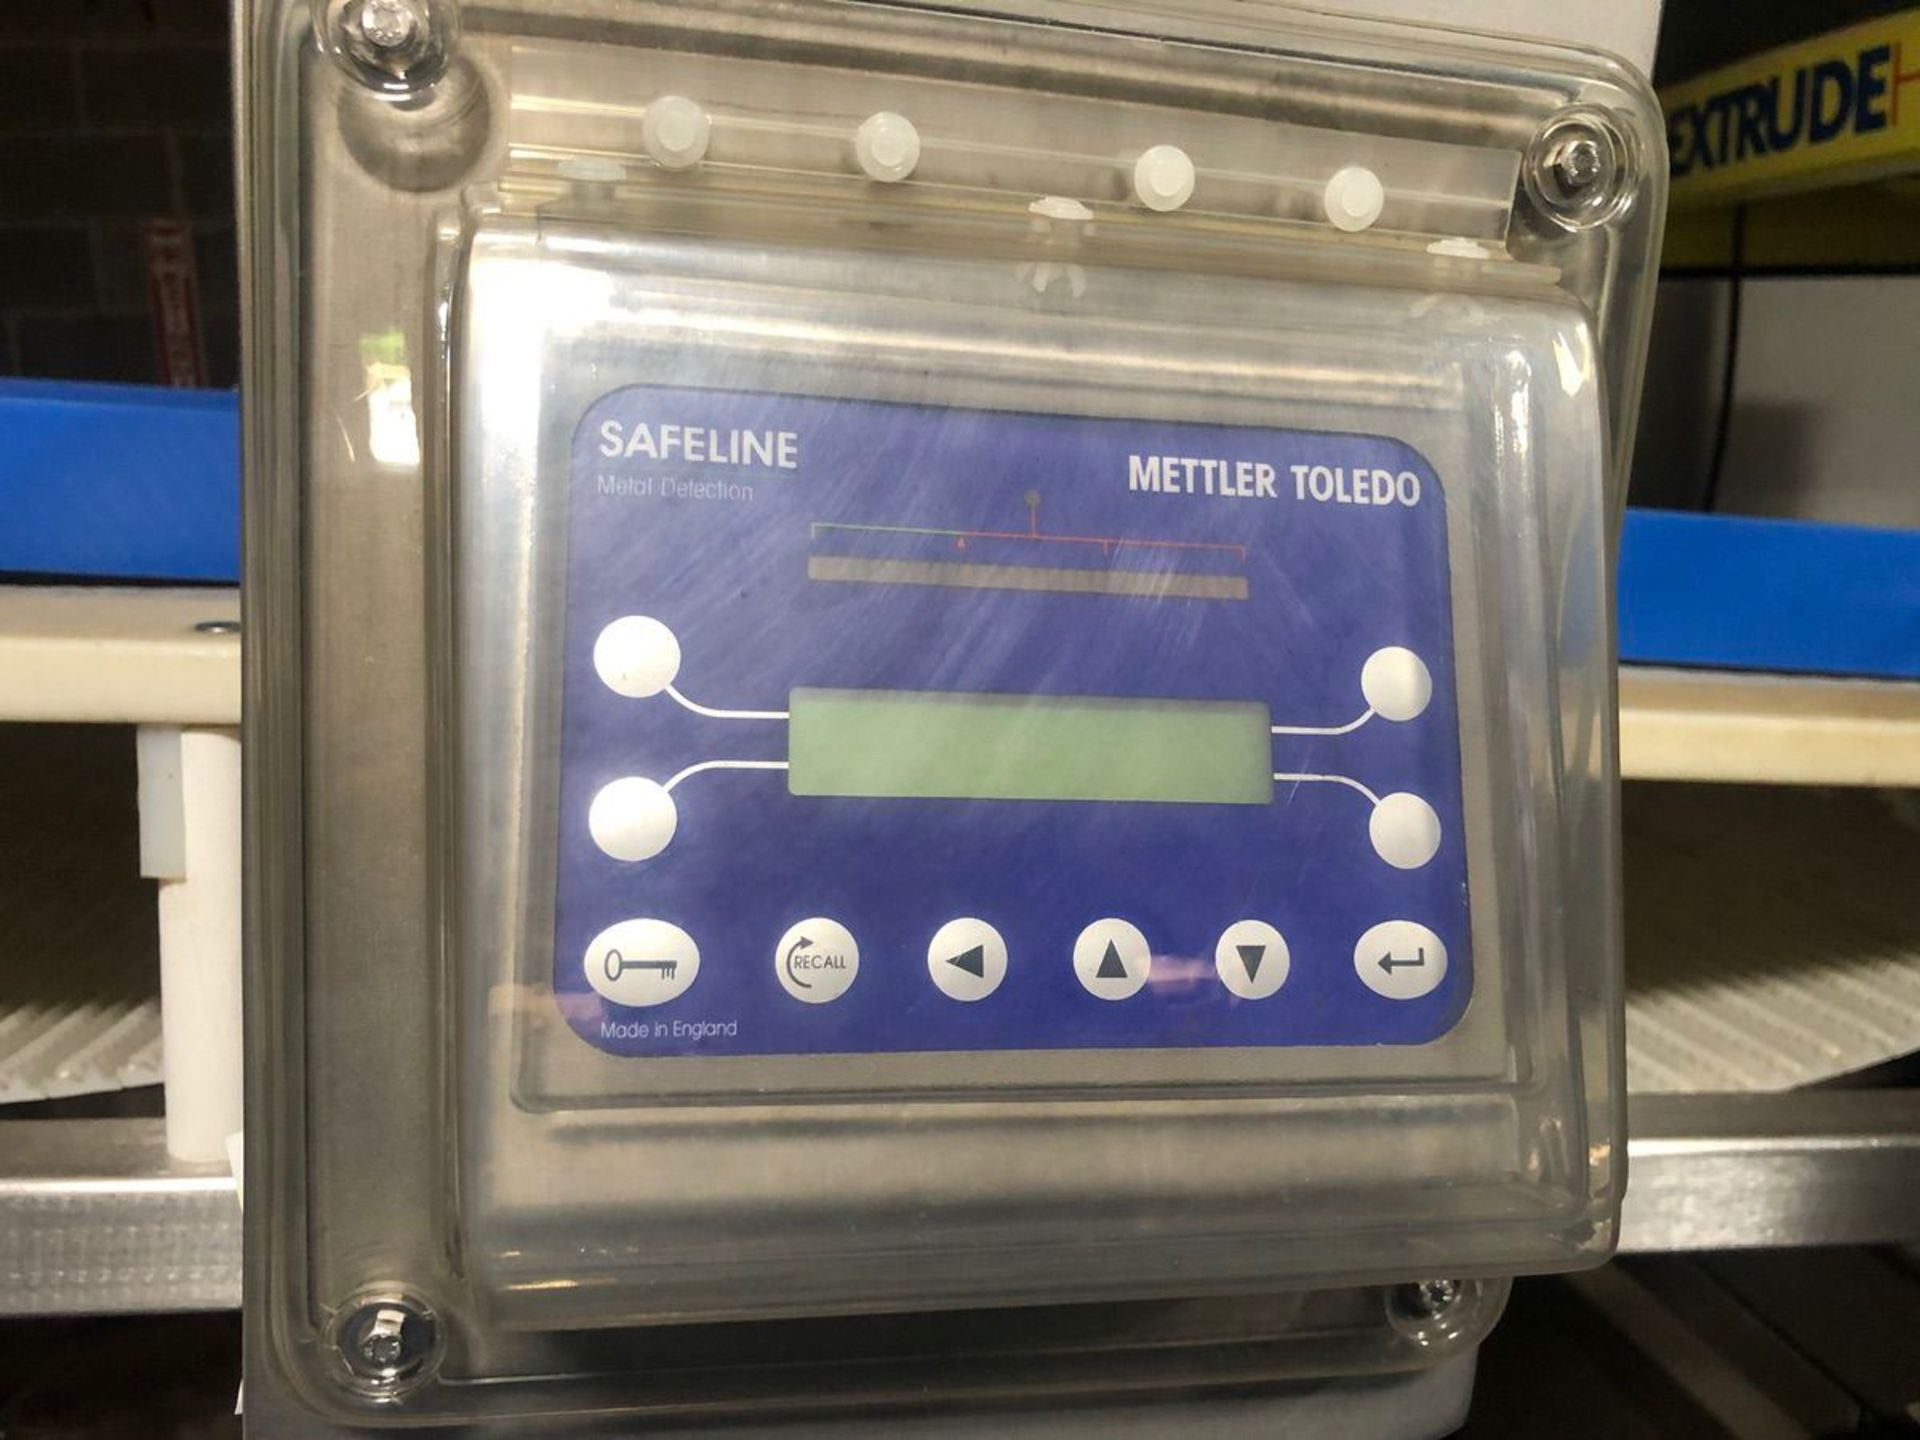 Safeline Conveyorized Slab Metal Detector with Retracting Reject (Tag | Rig Fee: $250 See Full Desc - Image 2 of 3